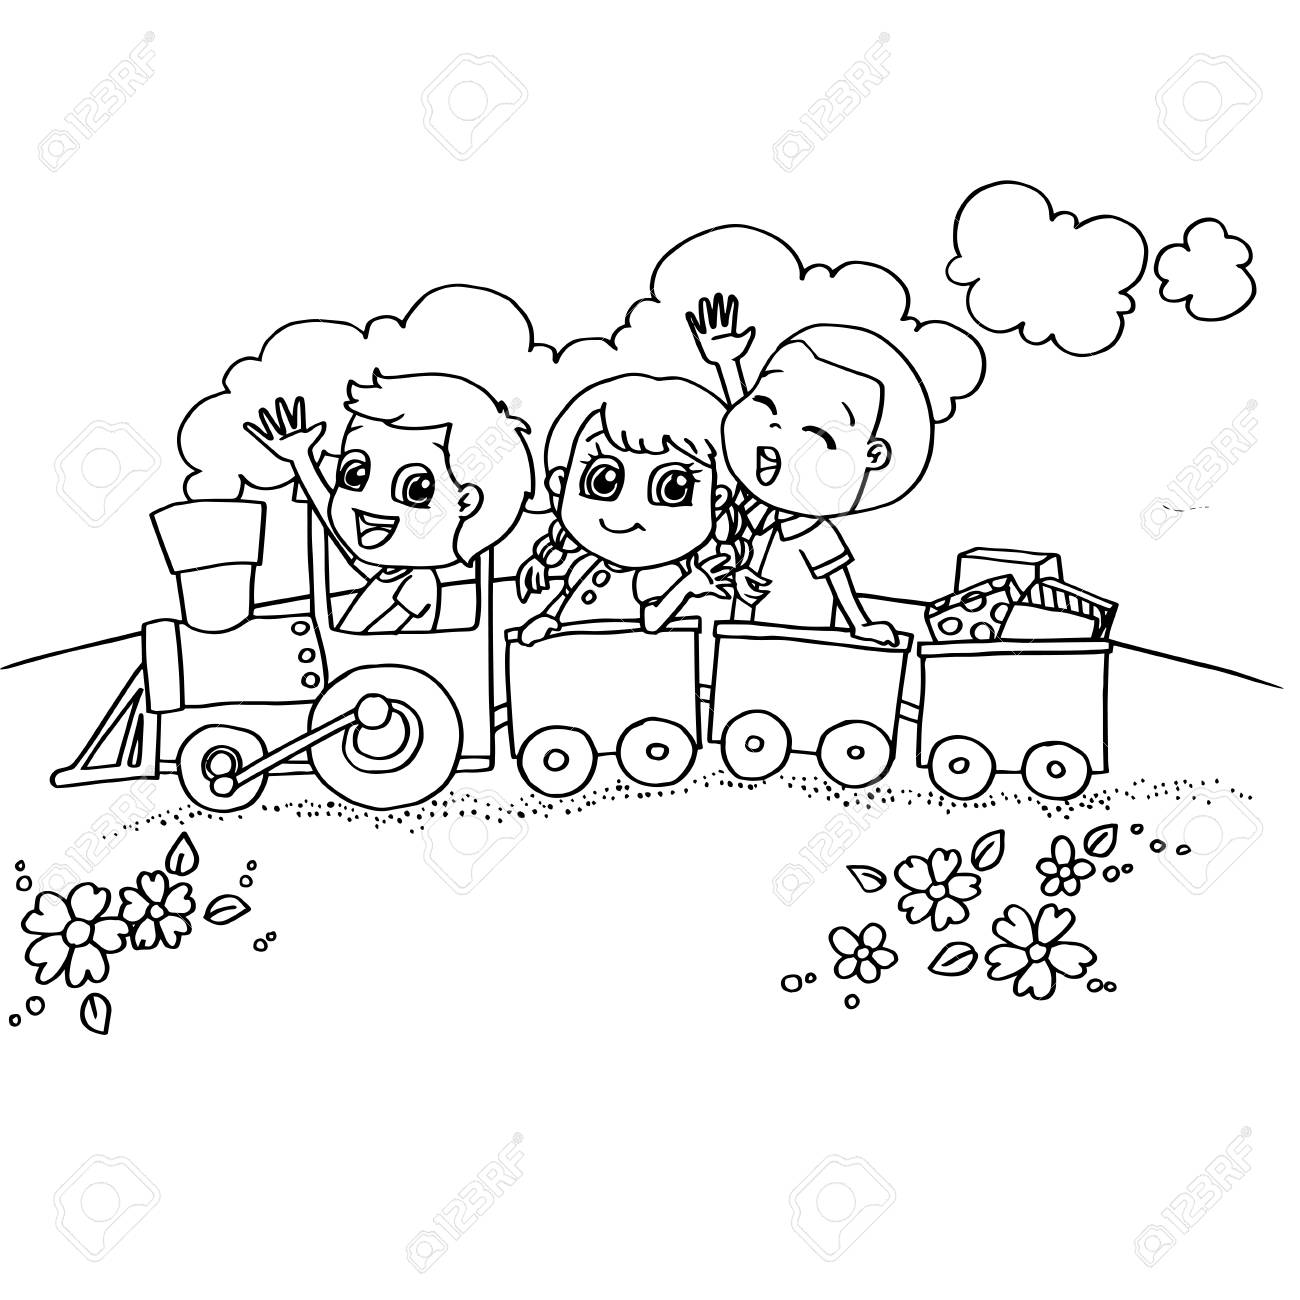 Image Of Little Boy And Friend Driving A Toy Train Coloring Page Vector Stock